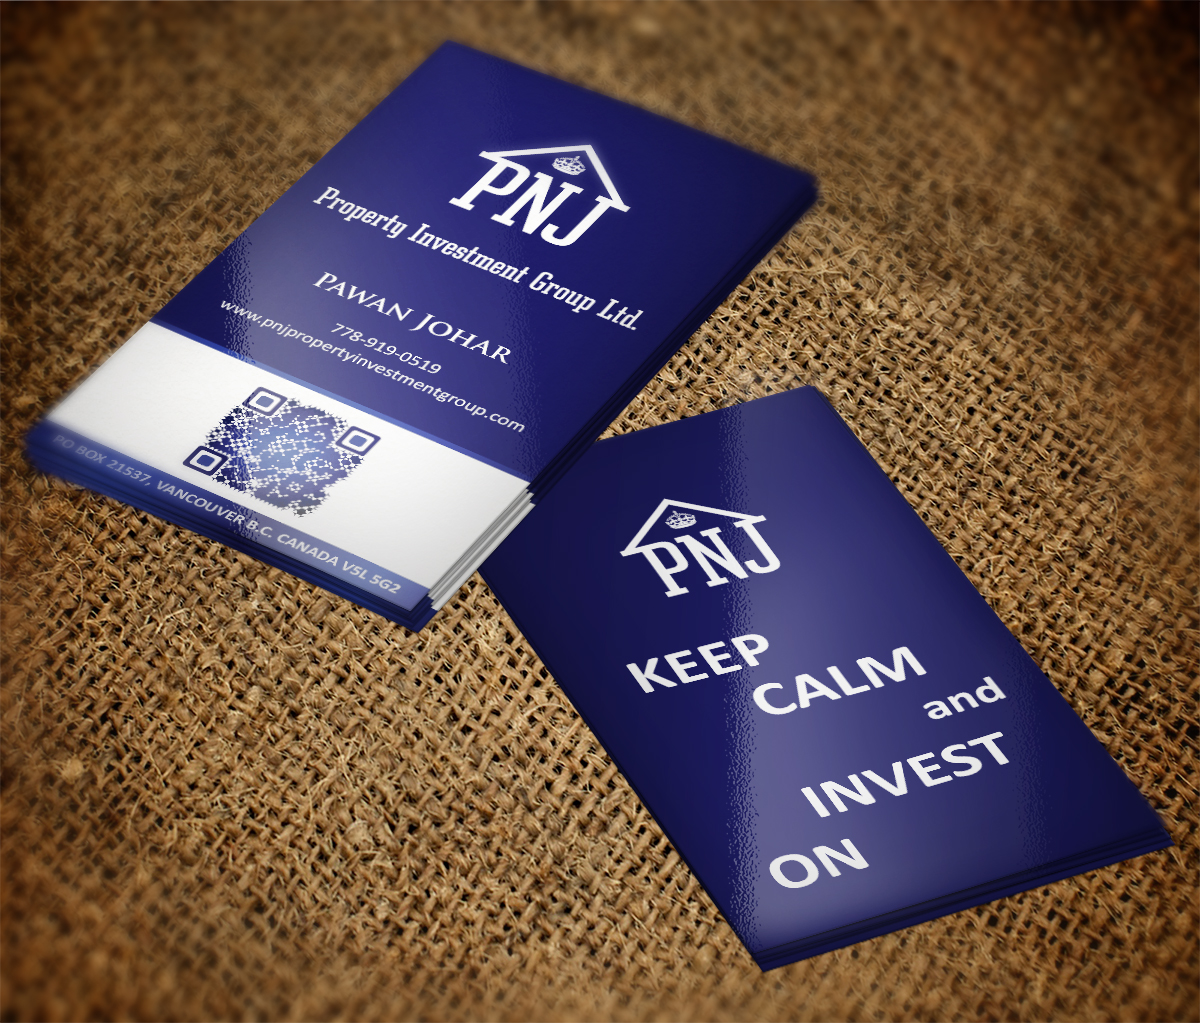 Business card design for pnj property investment group ltd by mt business card design by mt for business cards and logo for property investment company design magicingreecefo Image collections